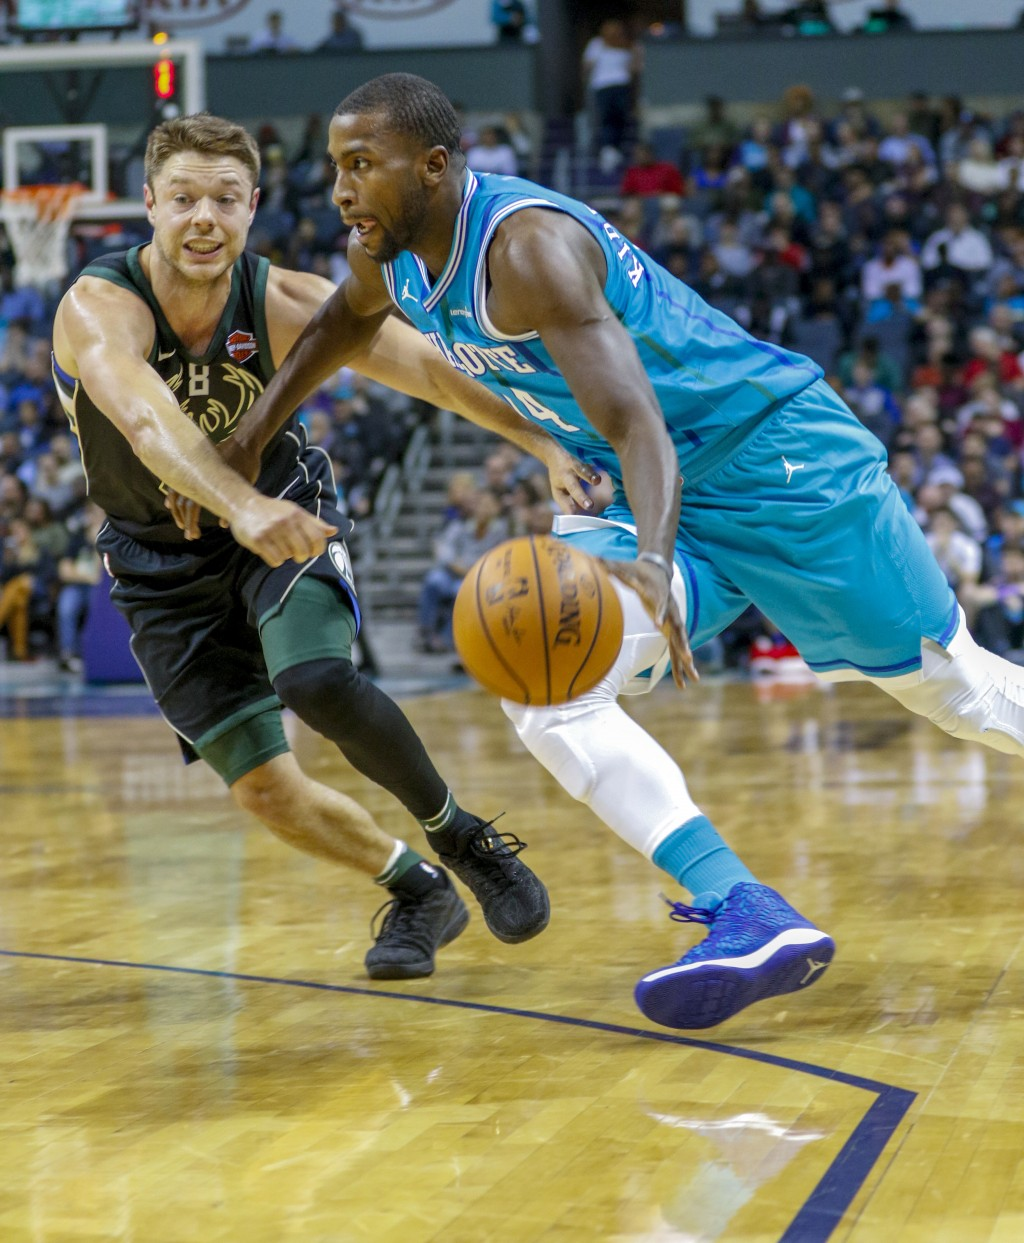 Charlotte Hornets forward Michael Kidd-Gilchrist, right, drives against Bucks guard Matthew Dellavedova, of Australia, in the first half of an NBA bas...